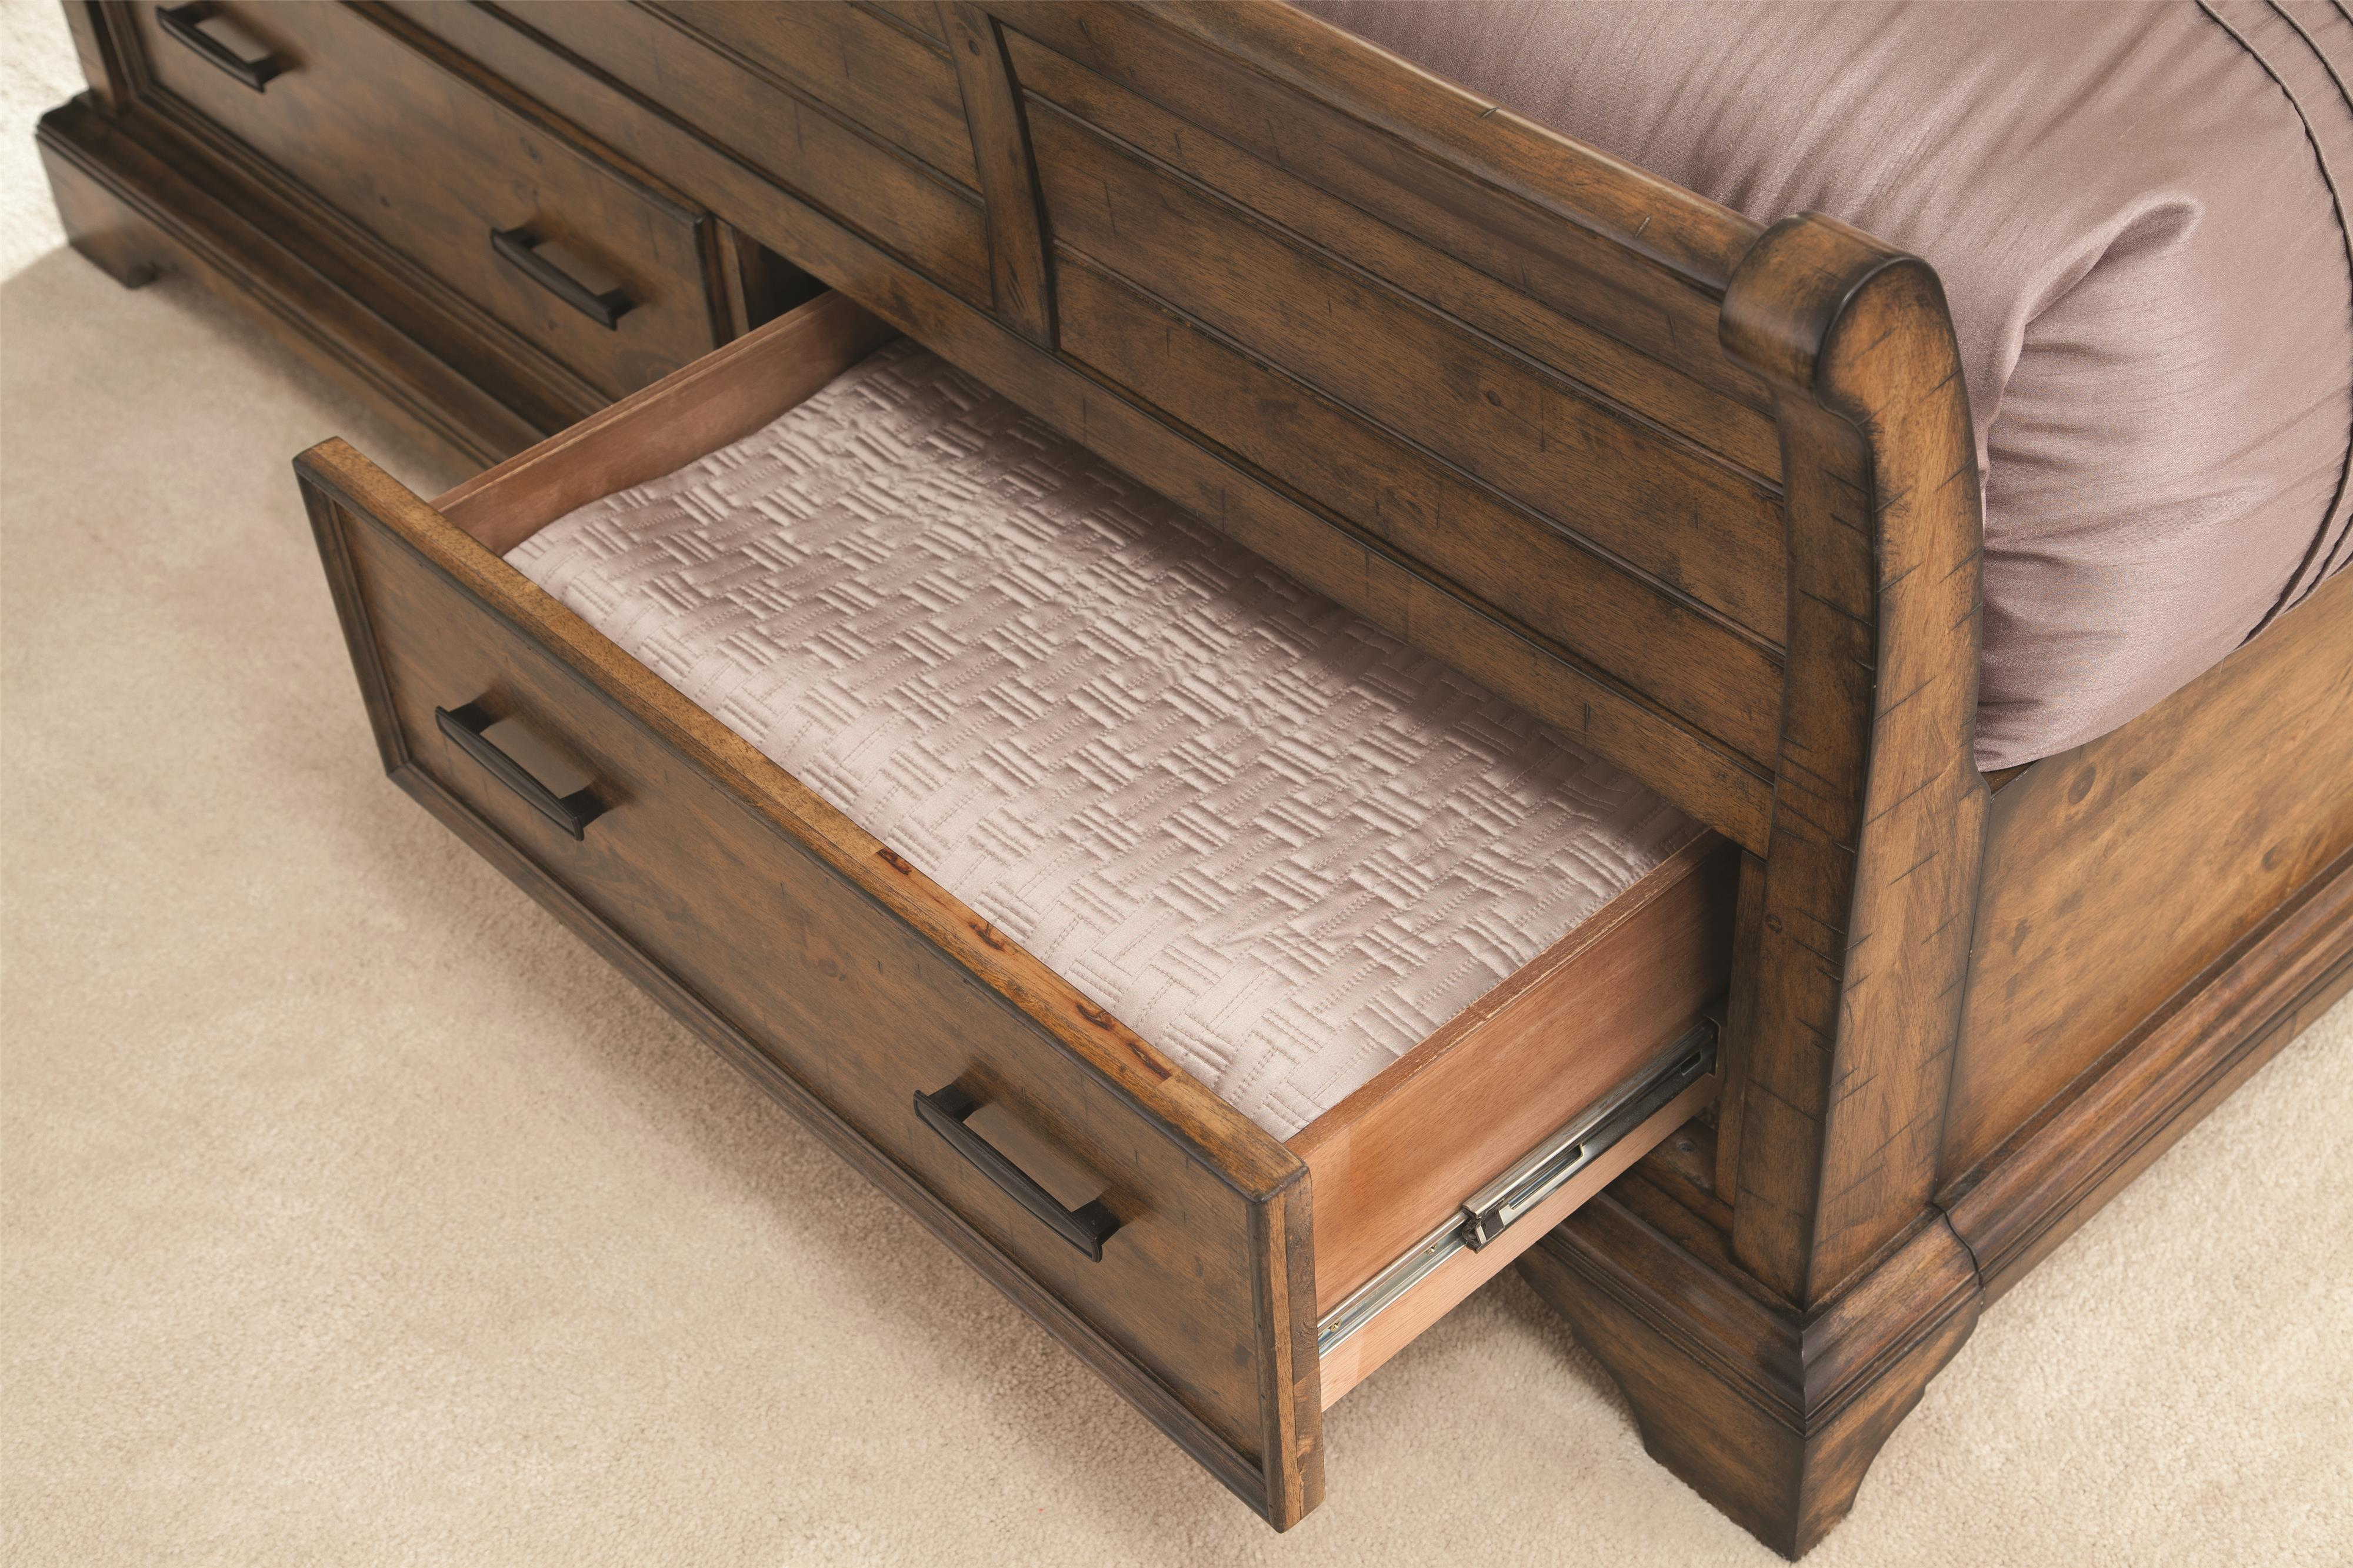 kensington 2 drawer storage sofa bed with footstool bernhardt brae leather elk grove california king sleigh drawers